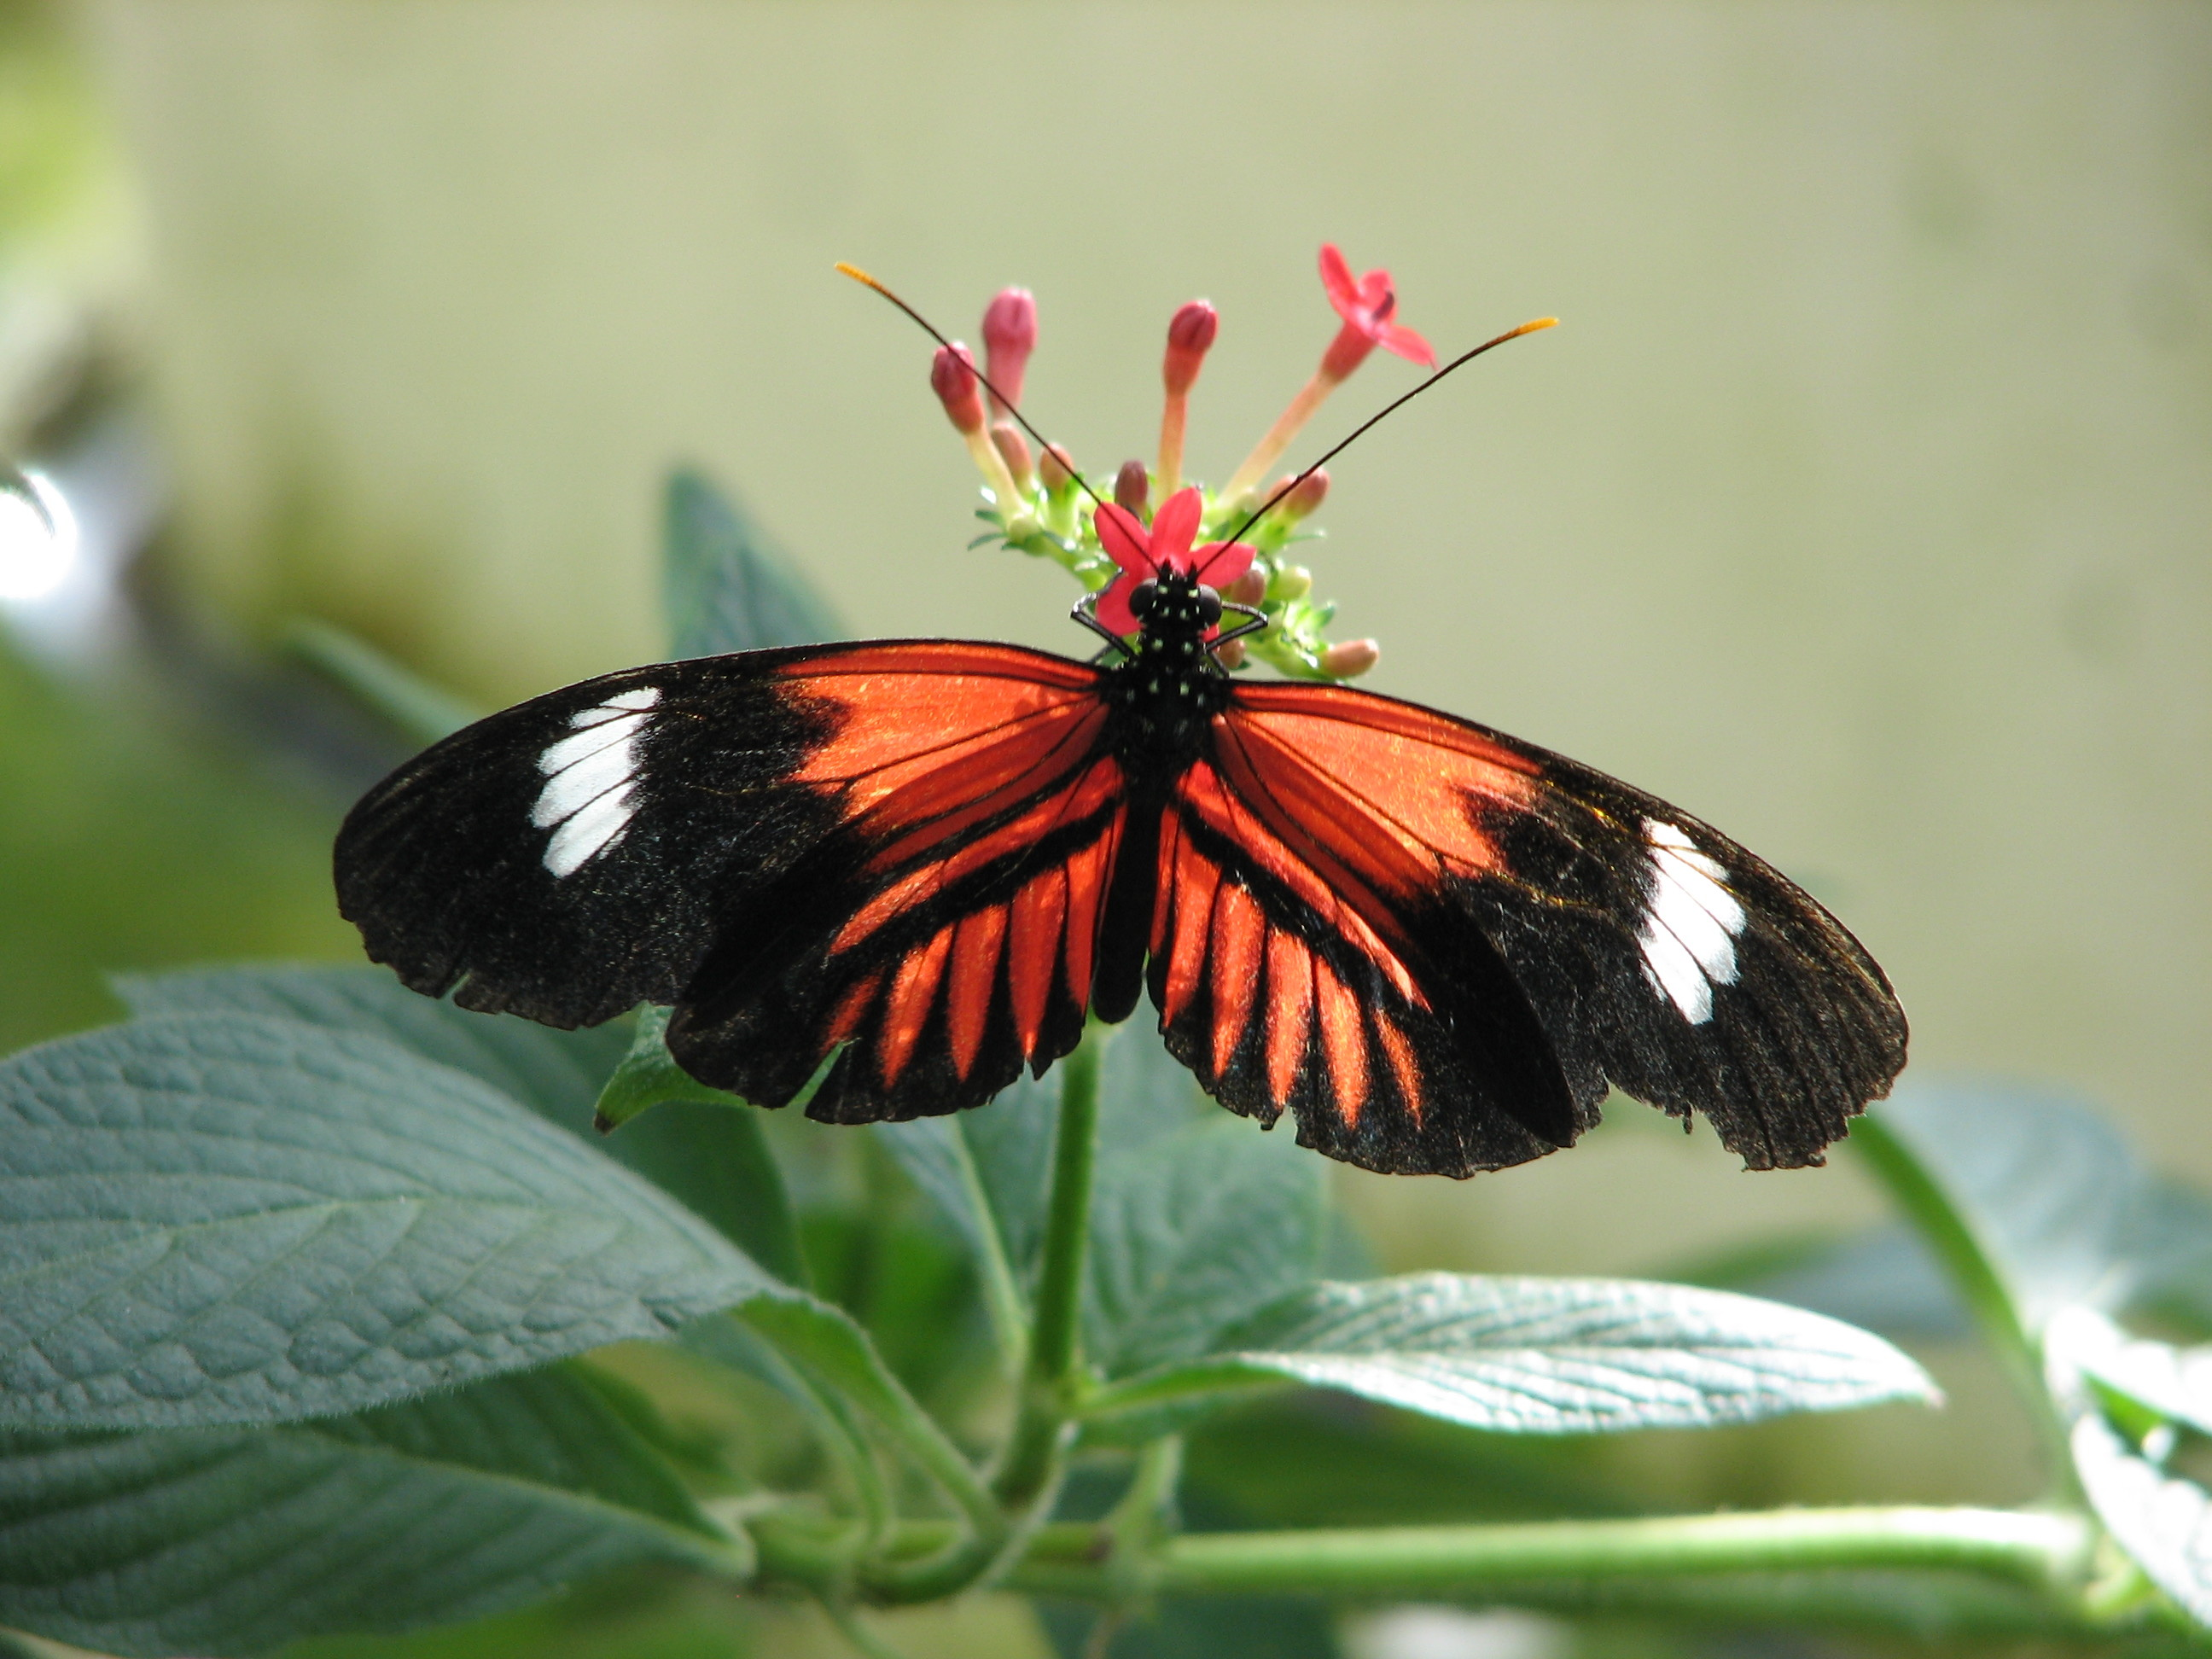 Res: 2592x1944, Red Butterfly